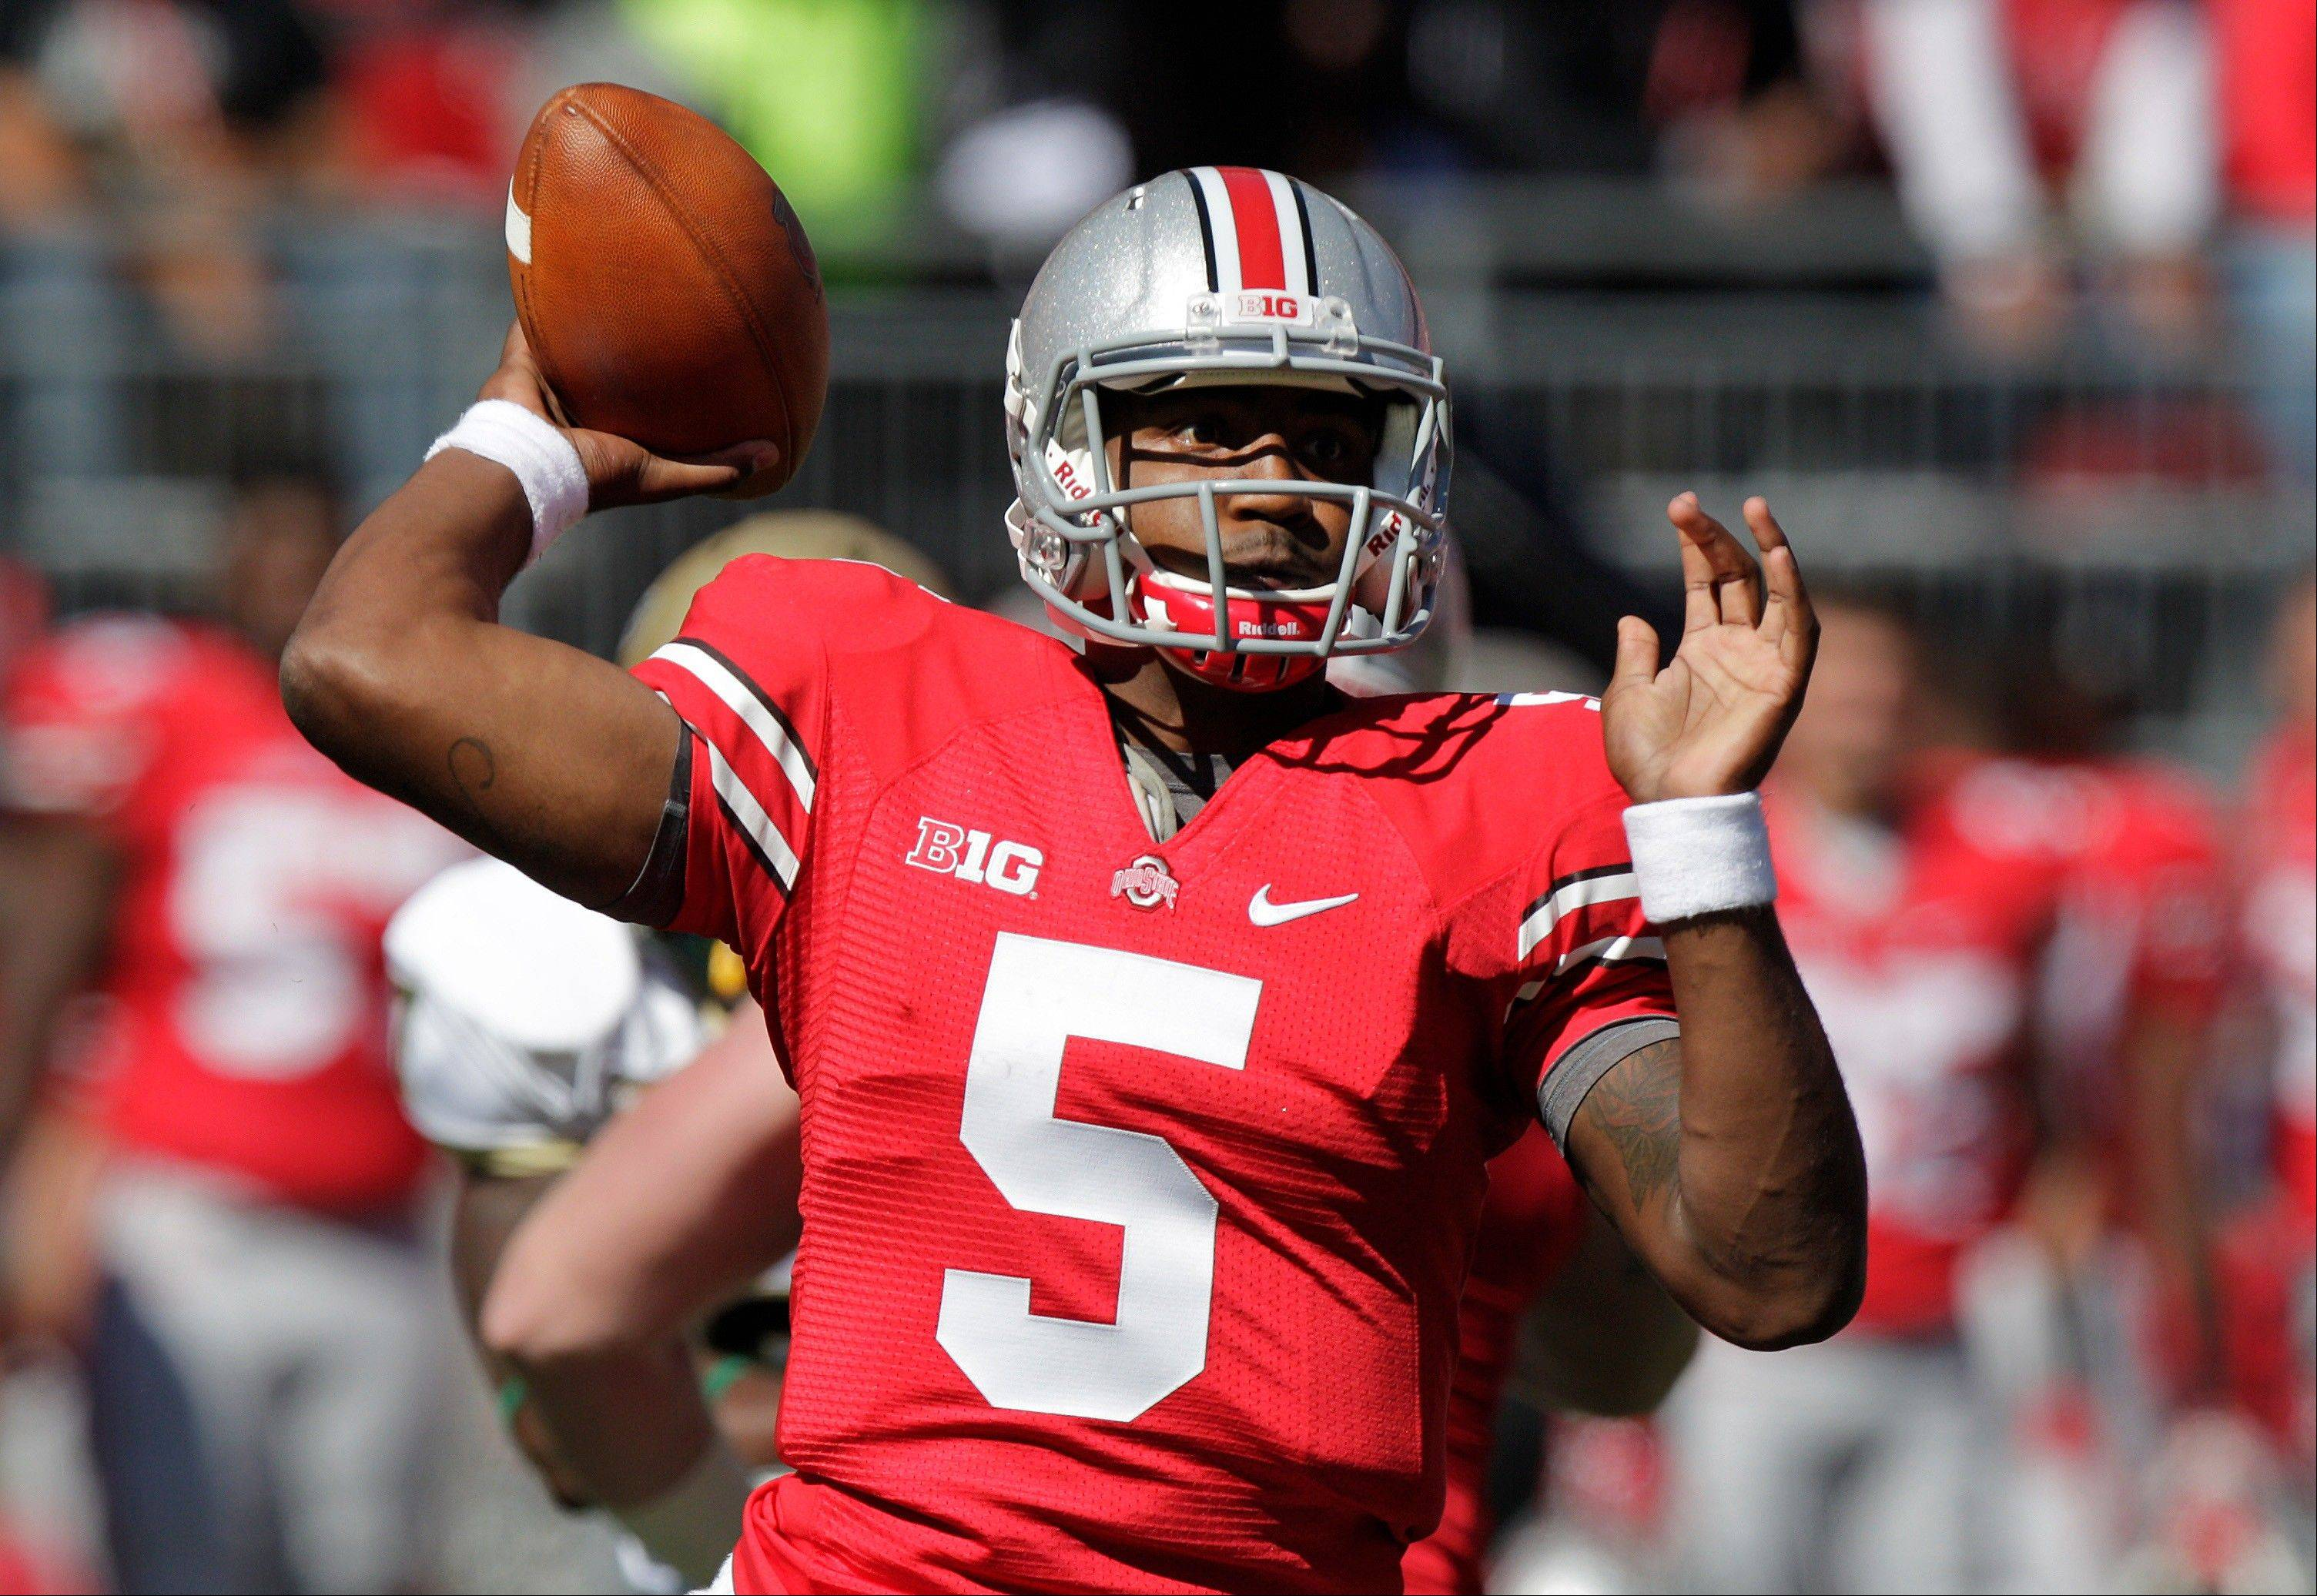 Ohio State quarterback Braxton Miller throws a pass against Alabama-Birmingham last Saturday in Columbus, Ohio.